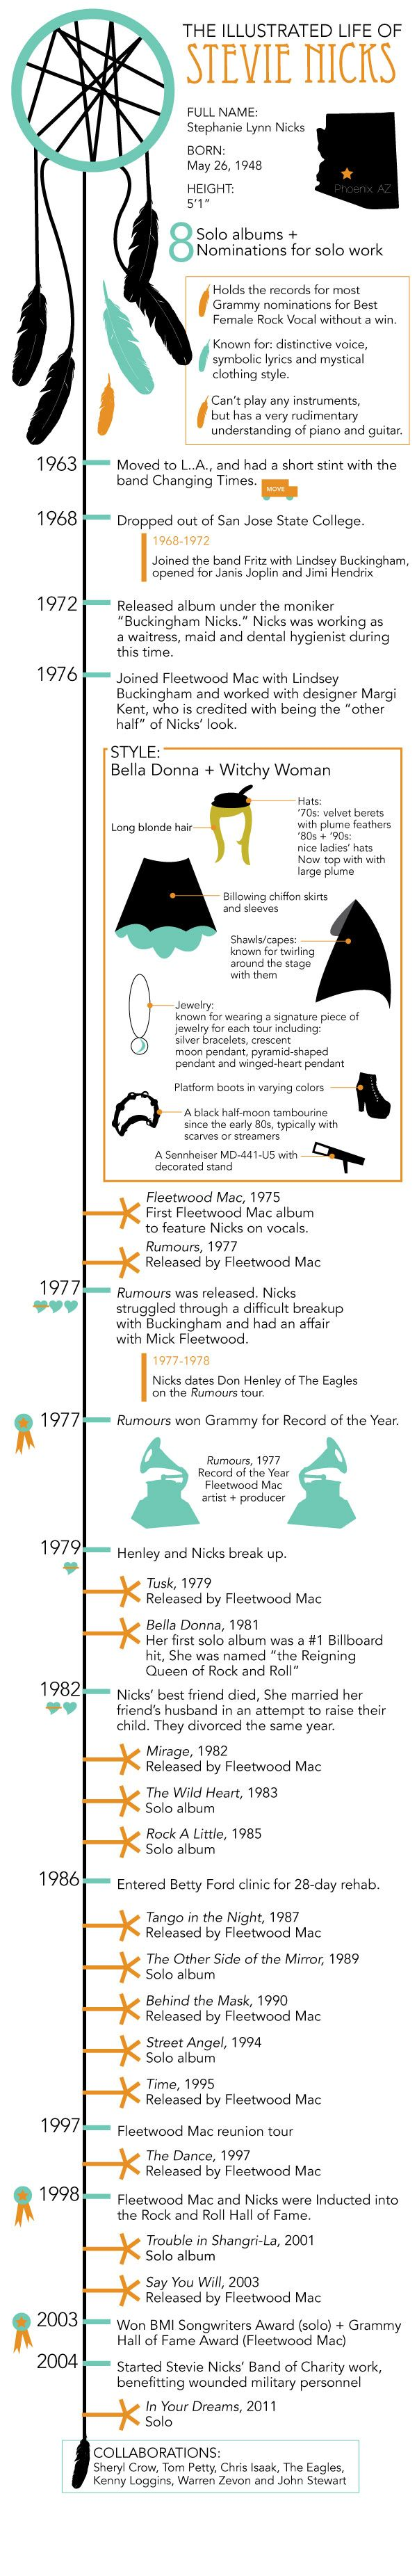 this is beautiful & fun: stevie nicks infographic!